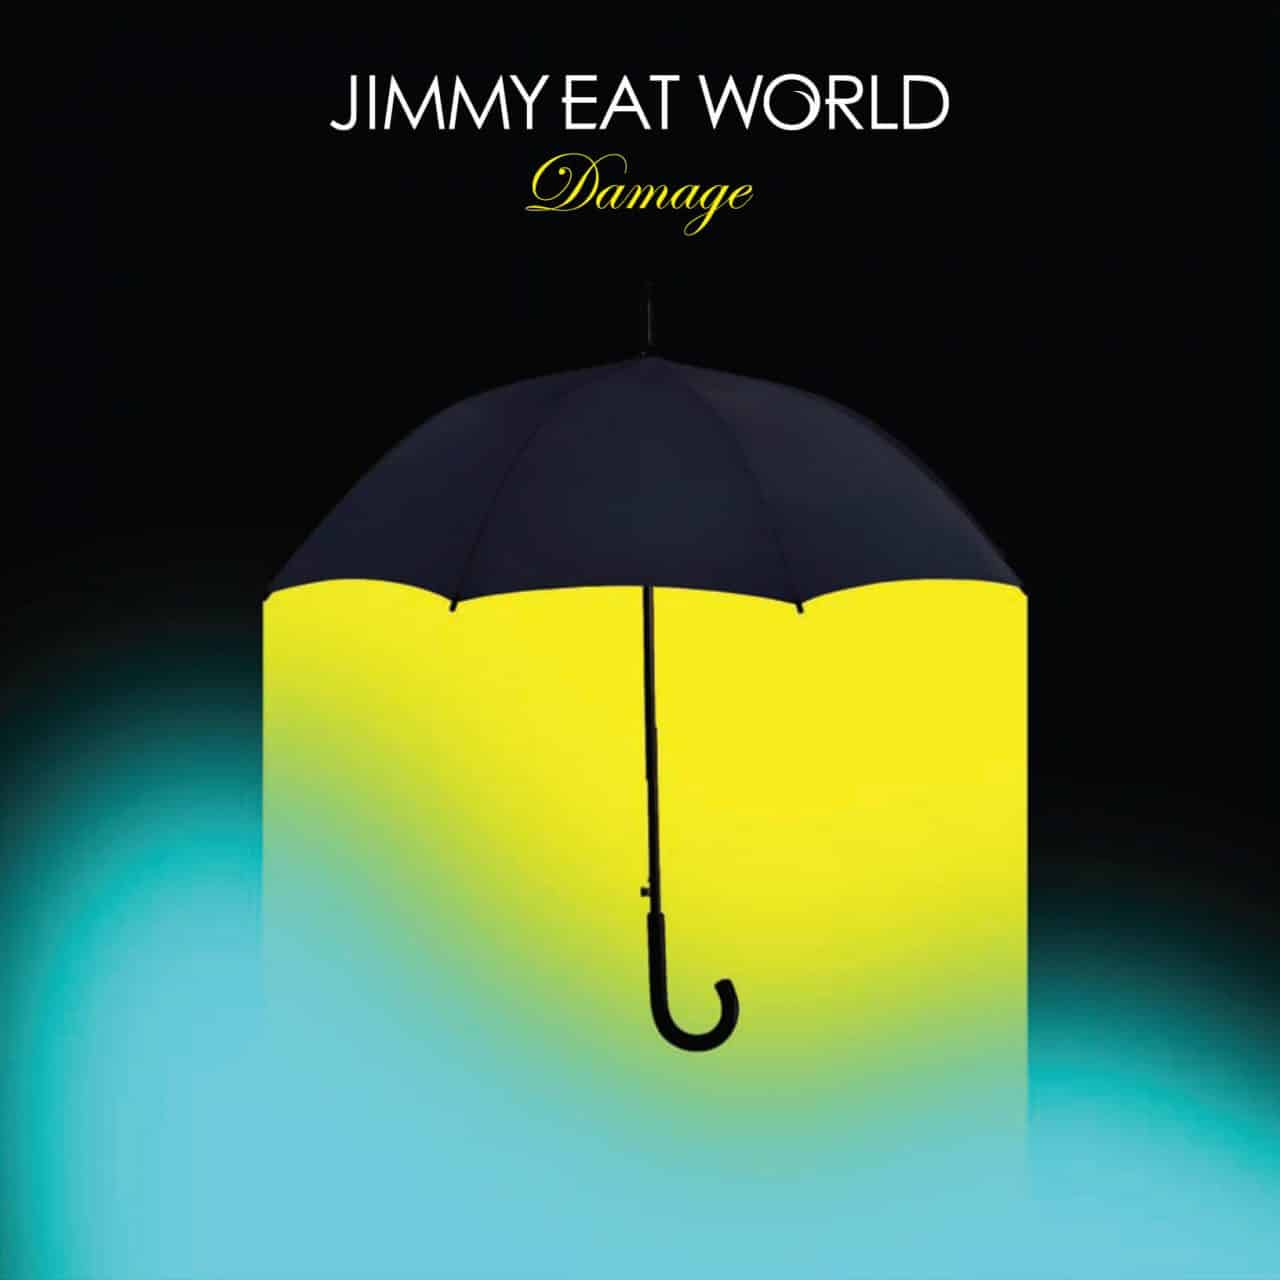 Damage by Jimmy Eat World